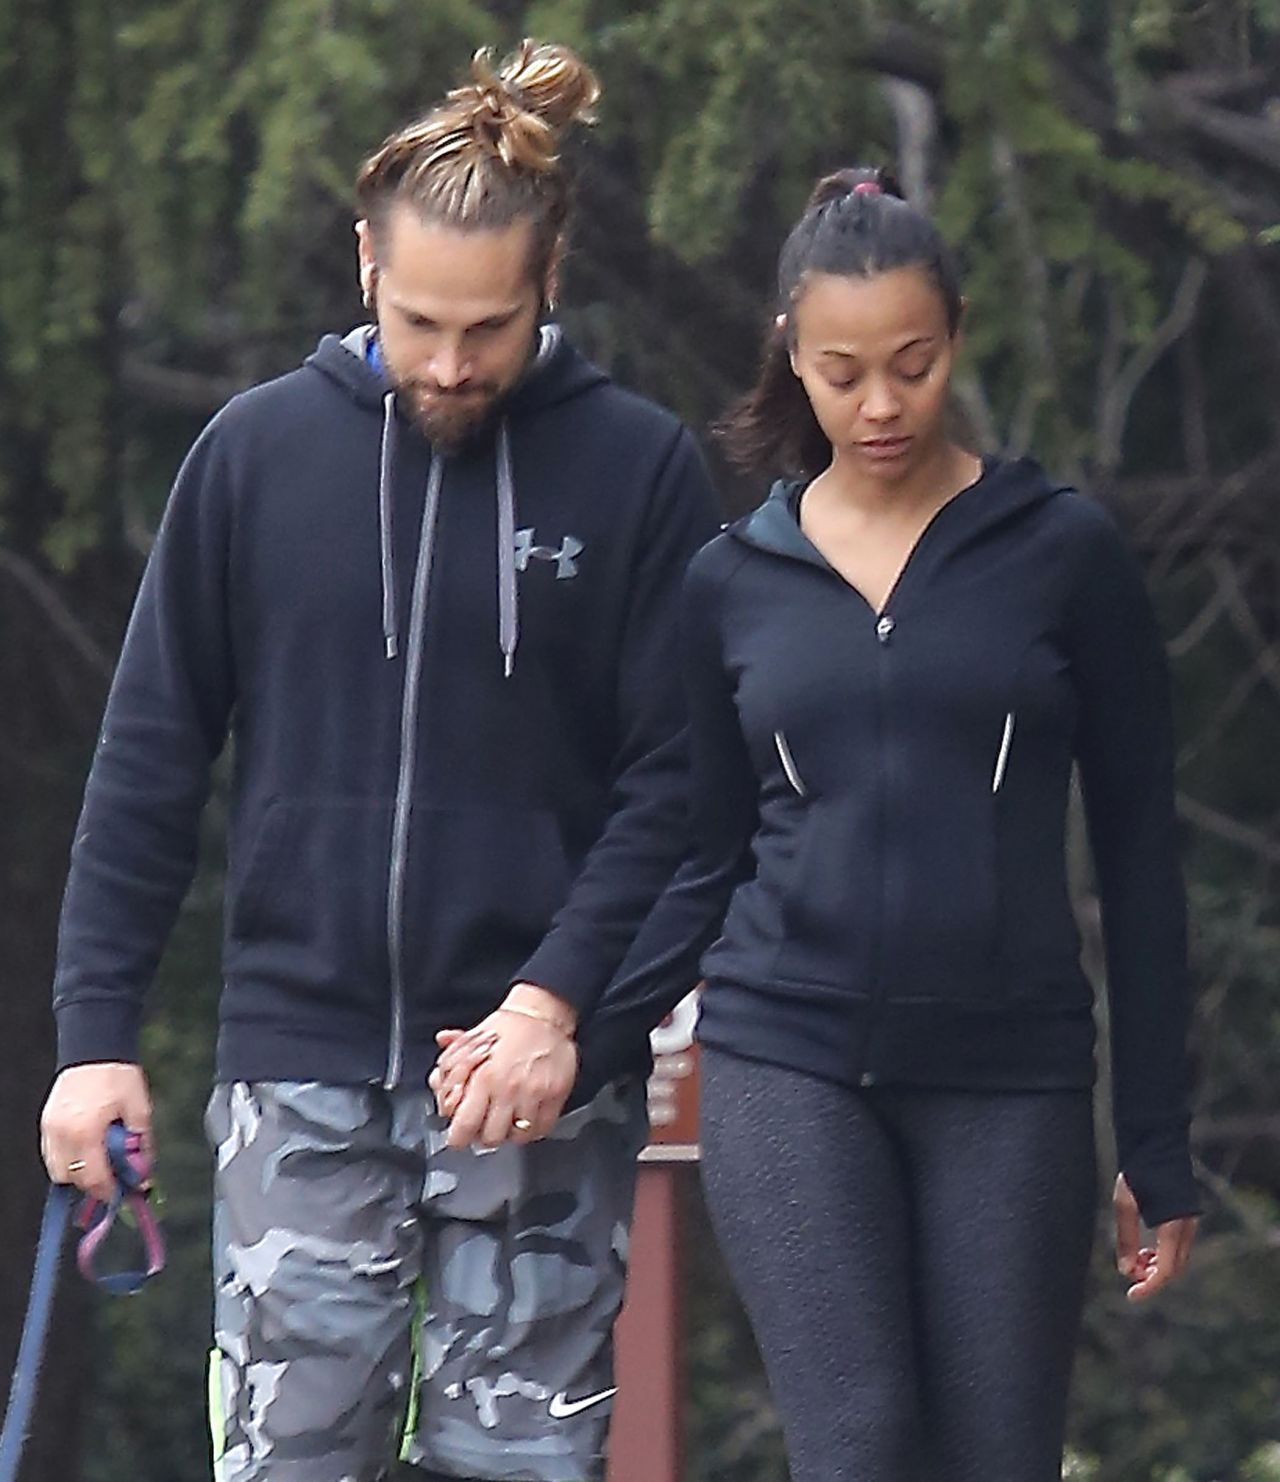 Zoe Saldana Hiking With Her Husband In Beverly Hills